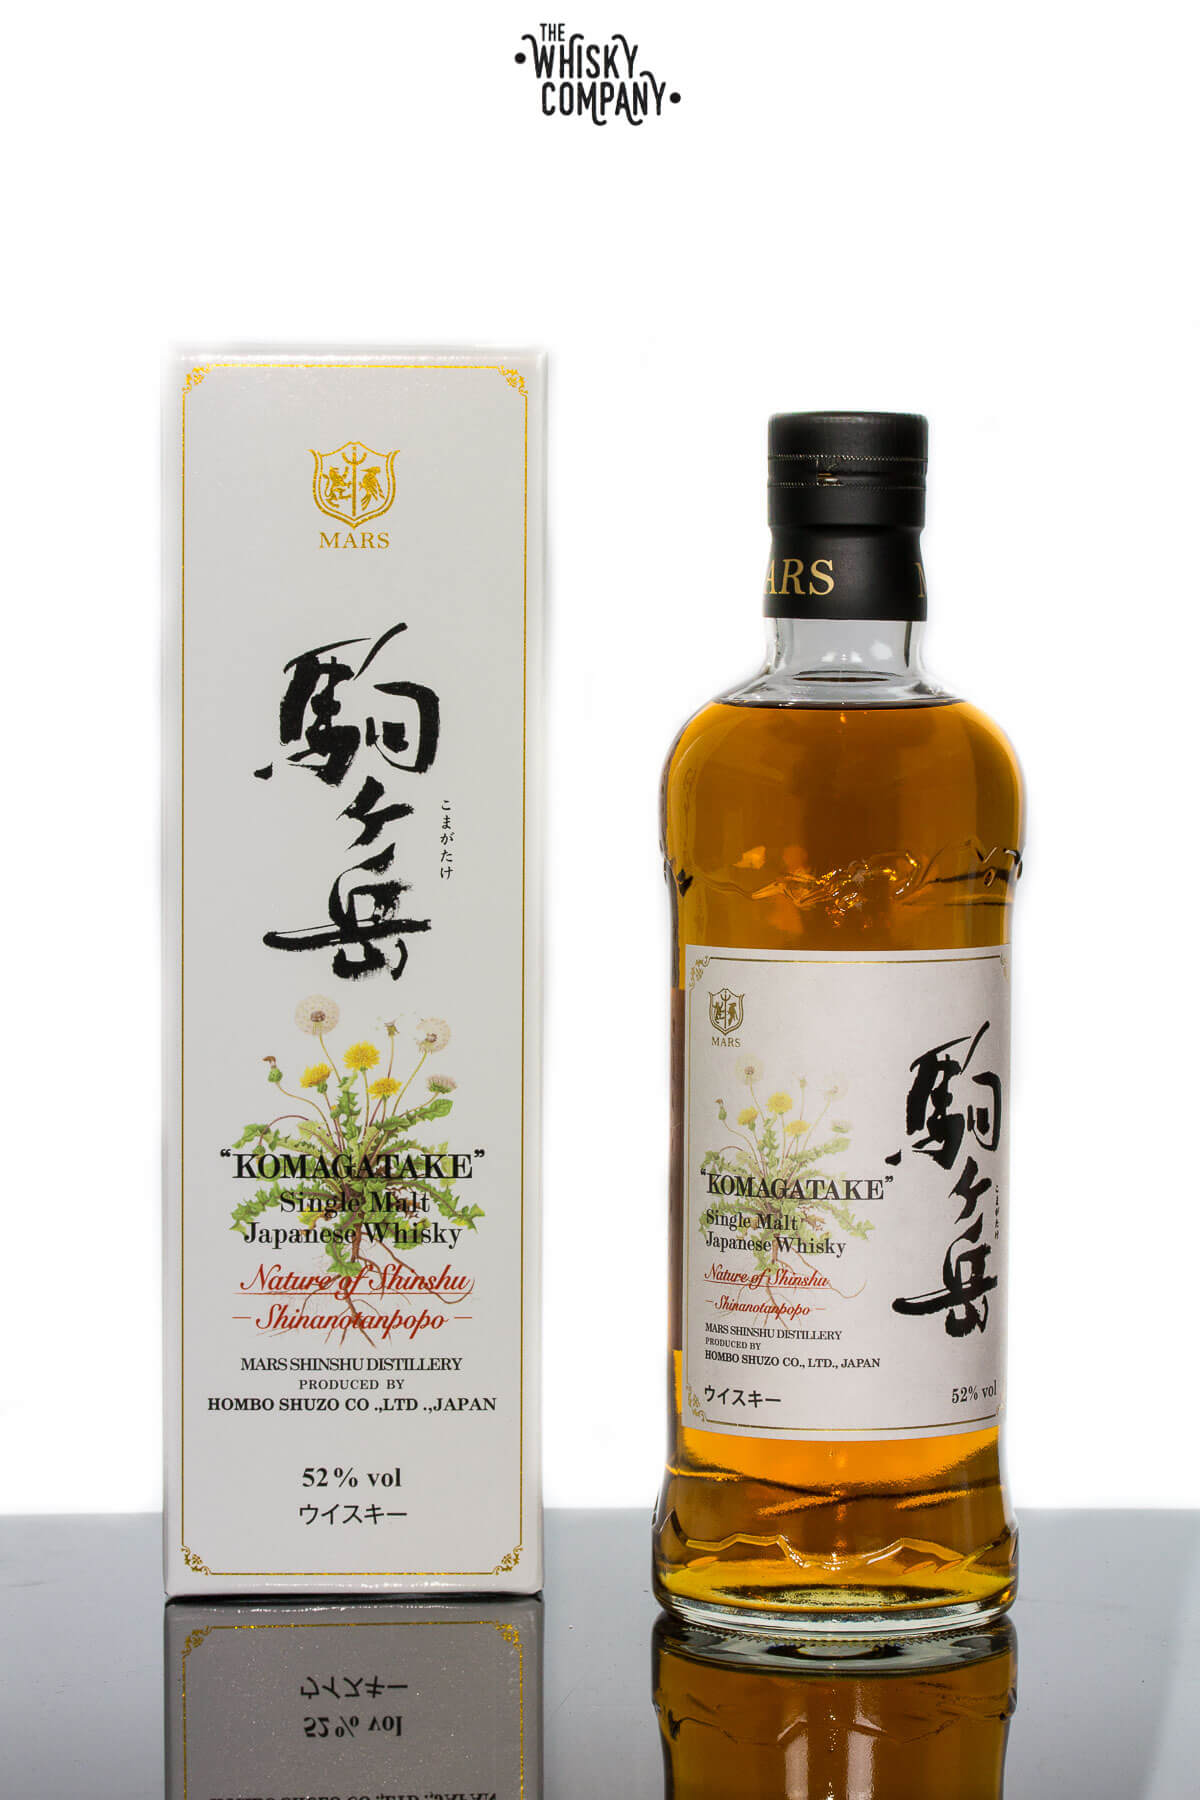 Mars Komagatake Shinanotanpopo Japanese Whisky 700ml